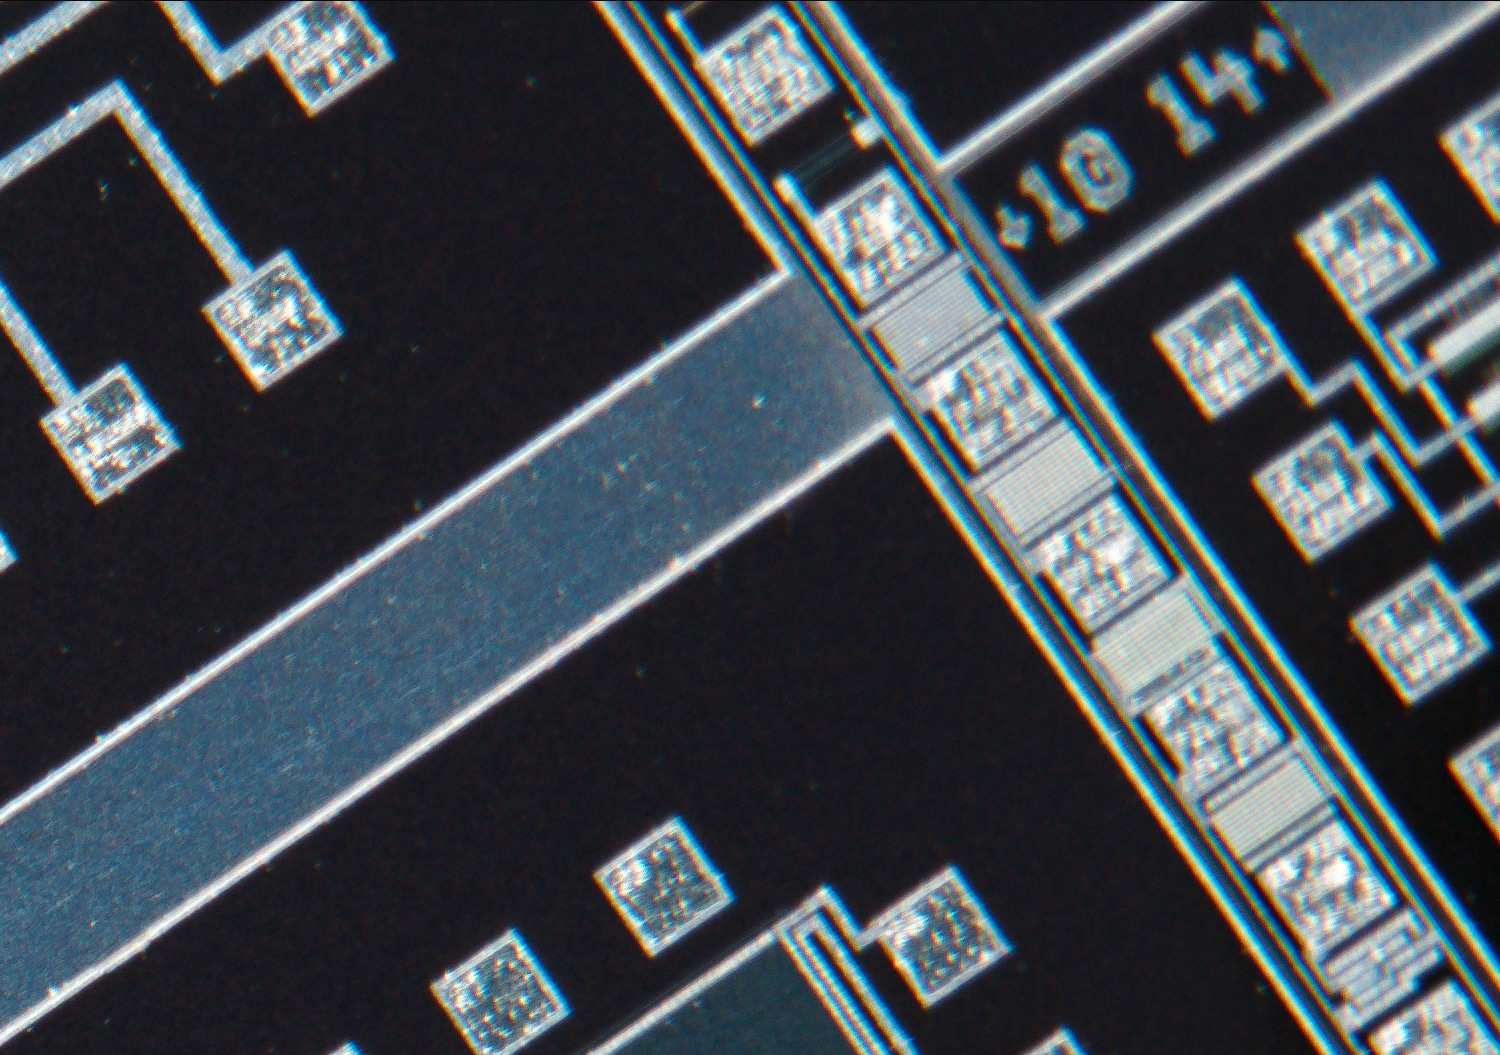 Nikon CFN Plan Apo 4x/0.20 160/- Finite Microscope Objective 100% actual pixel view corner crop. Clicking on an image will open a larger version.